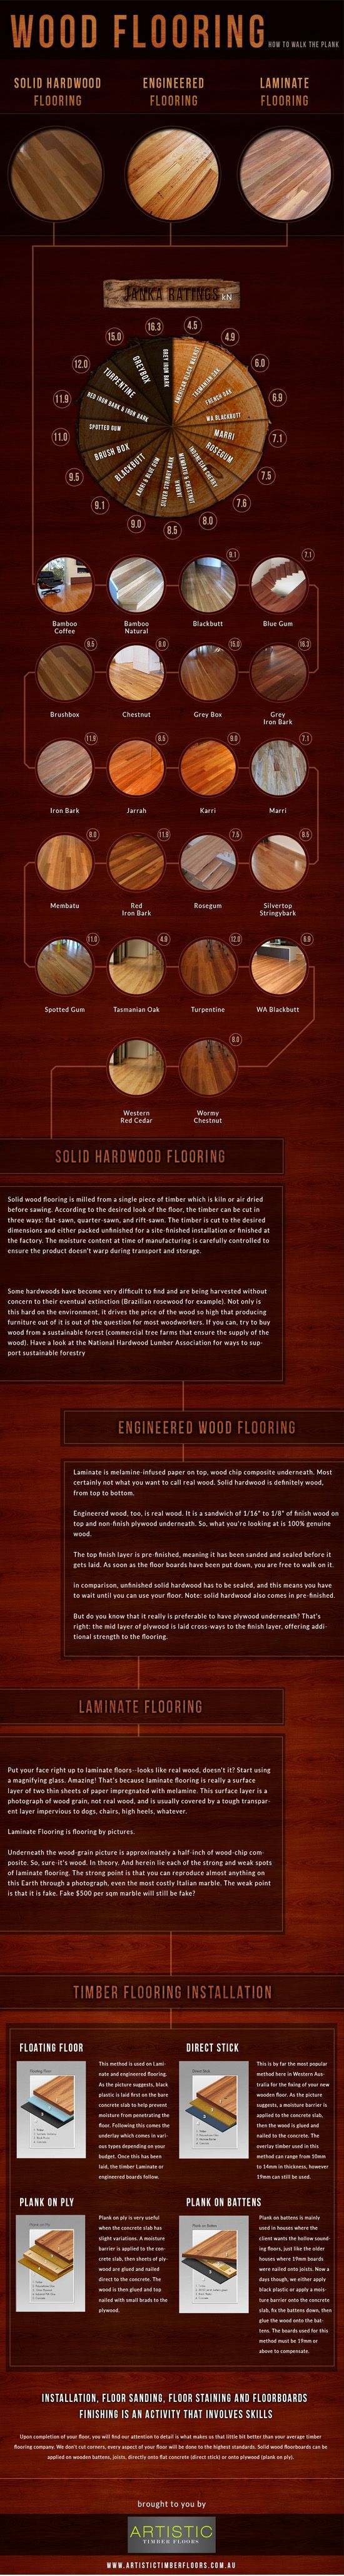 best 25 laminate flooring in kitchen ideas only on pinterest wood flooring how to walk the plank this infographic introduces the different types of